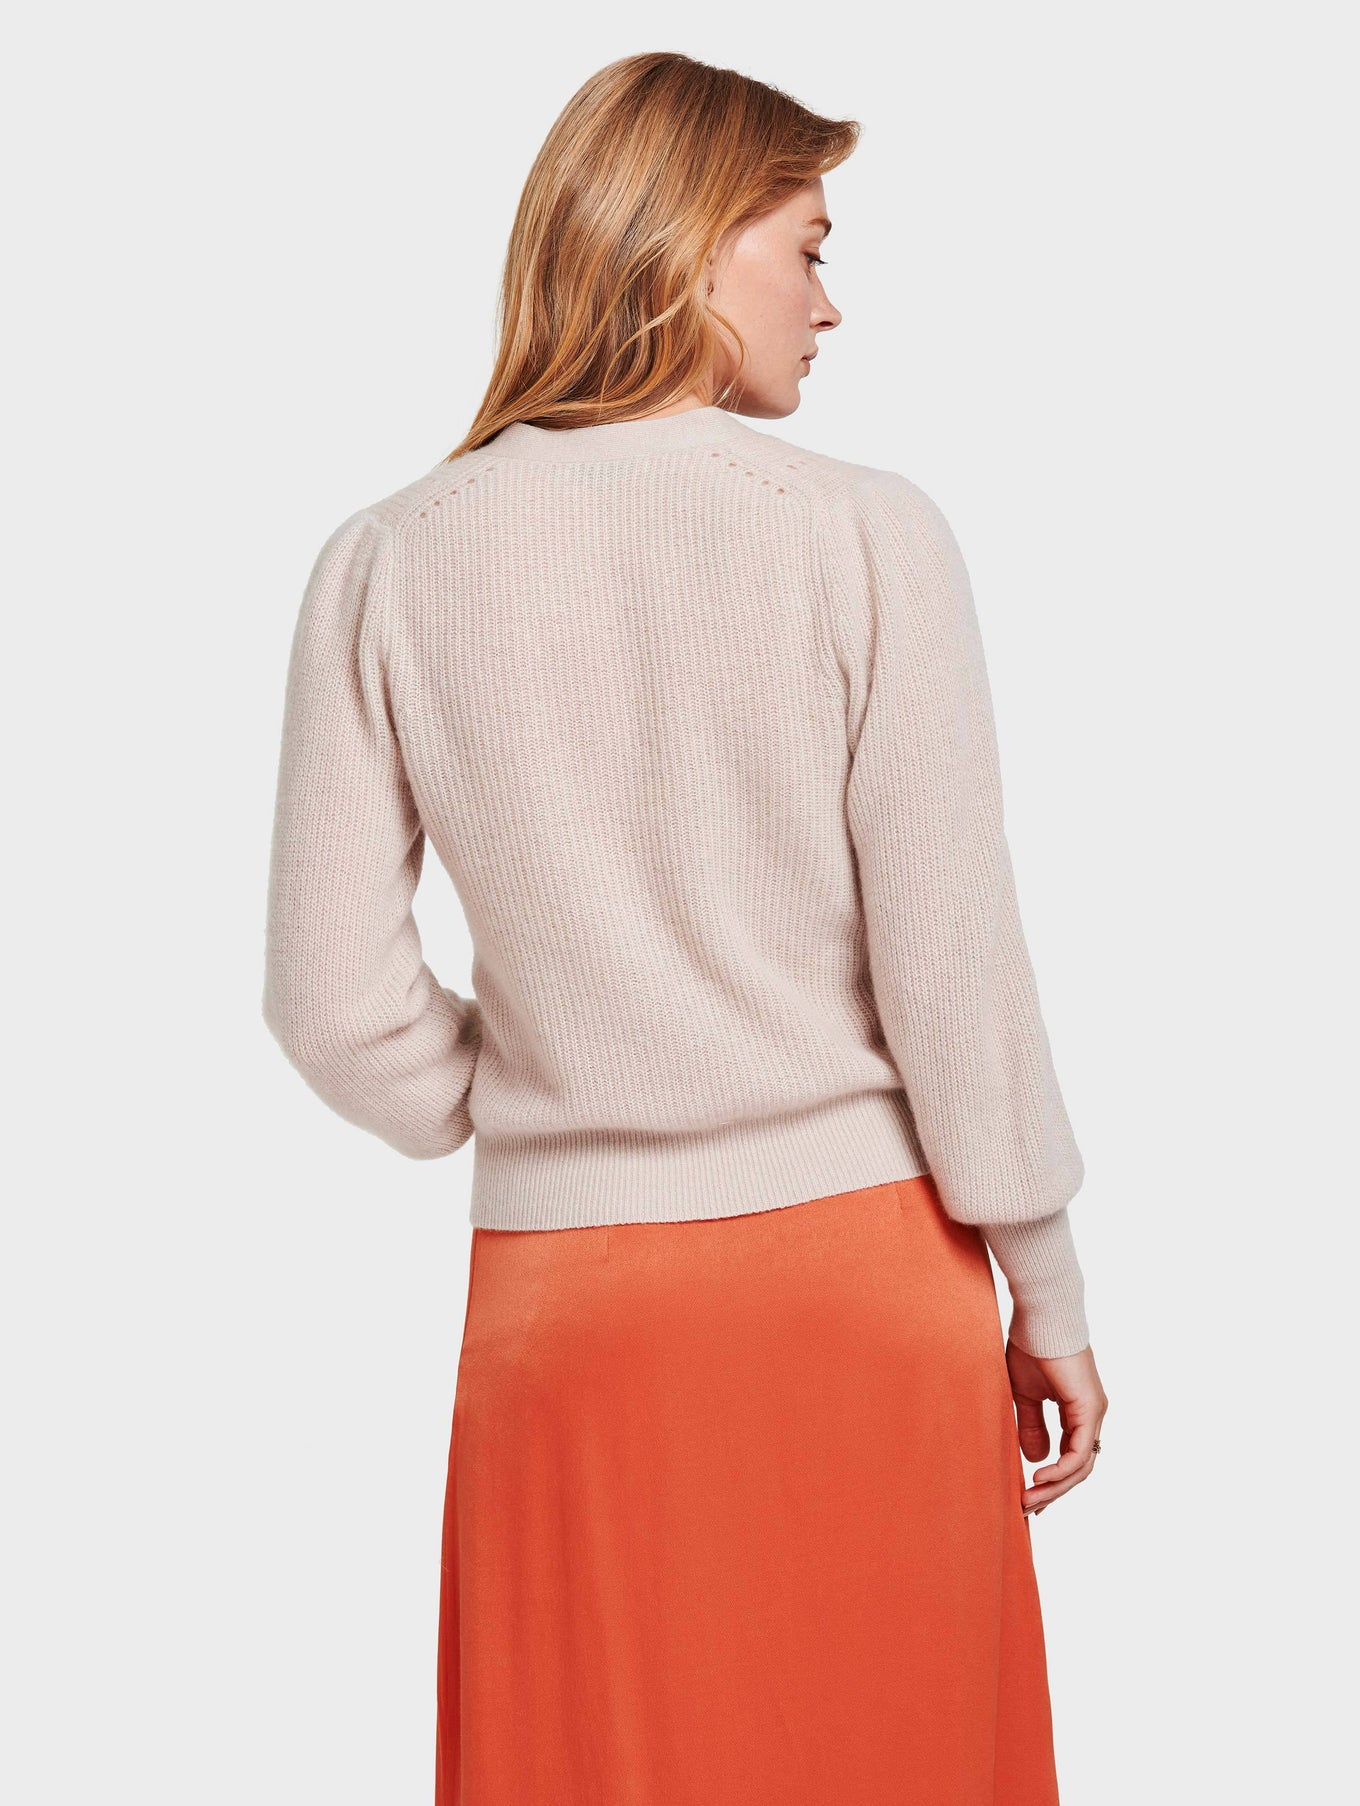 Cashmere Exaggerated Puff Sleeve Cardigan - Sandstone Heather - Image 4